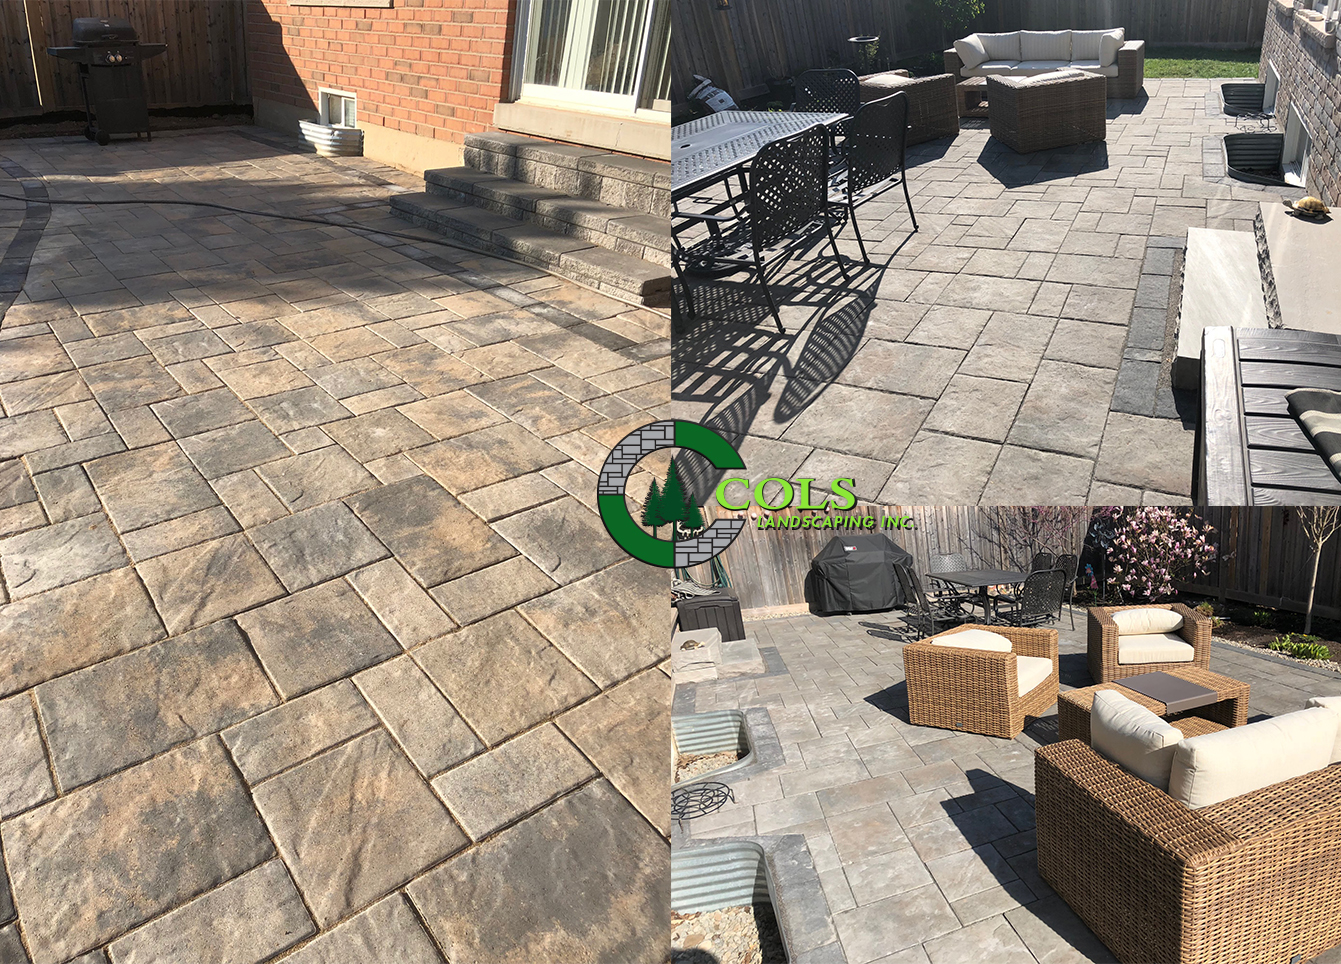 COLS patio landscaping ideas